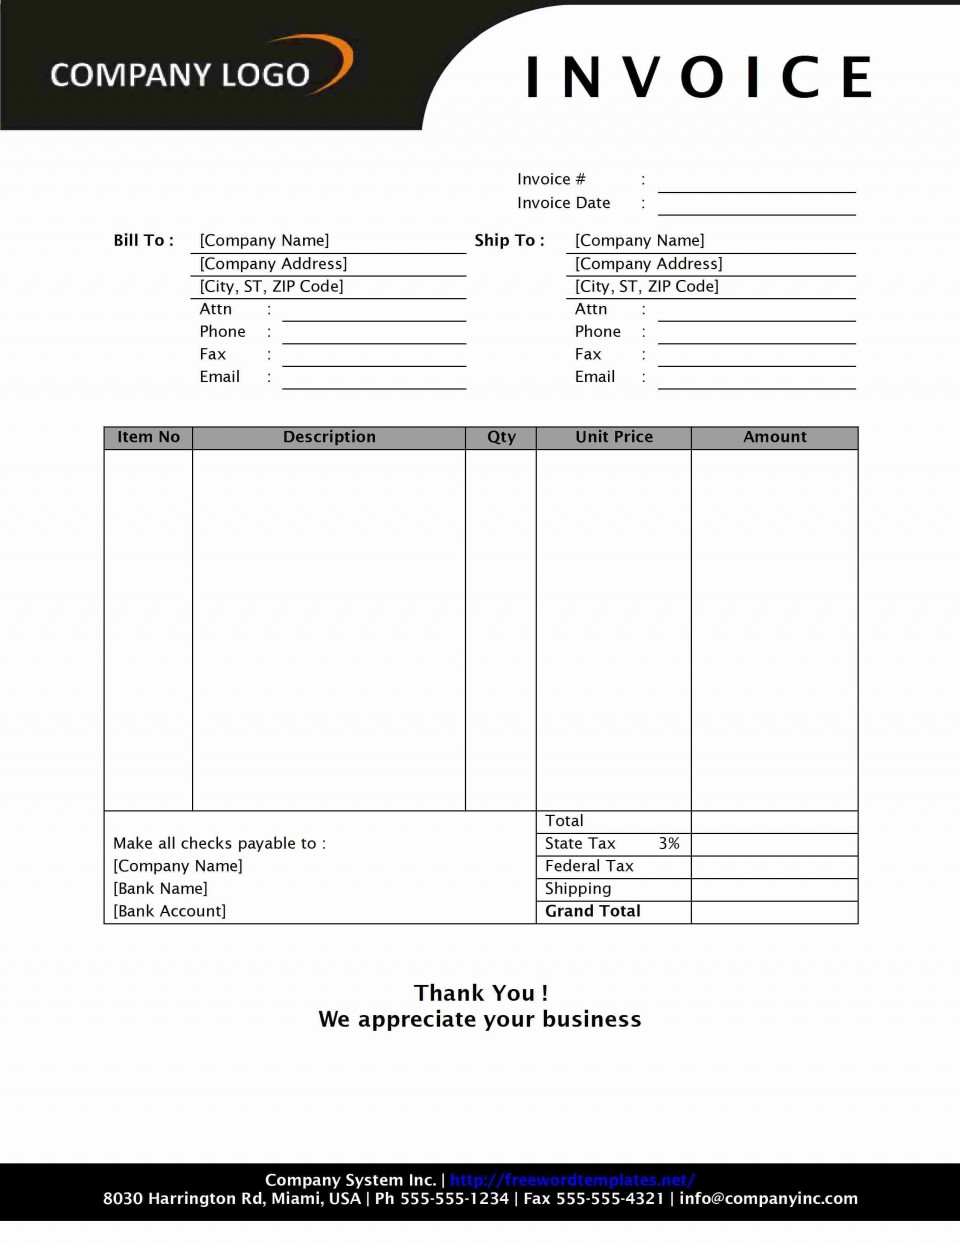 002 Archaicawful Invoice Template Free Download High Resolution  Excel Service Word Format Gst Html960